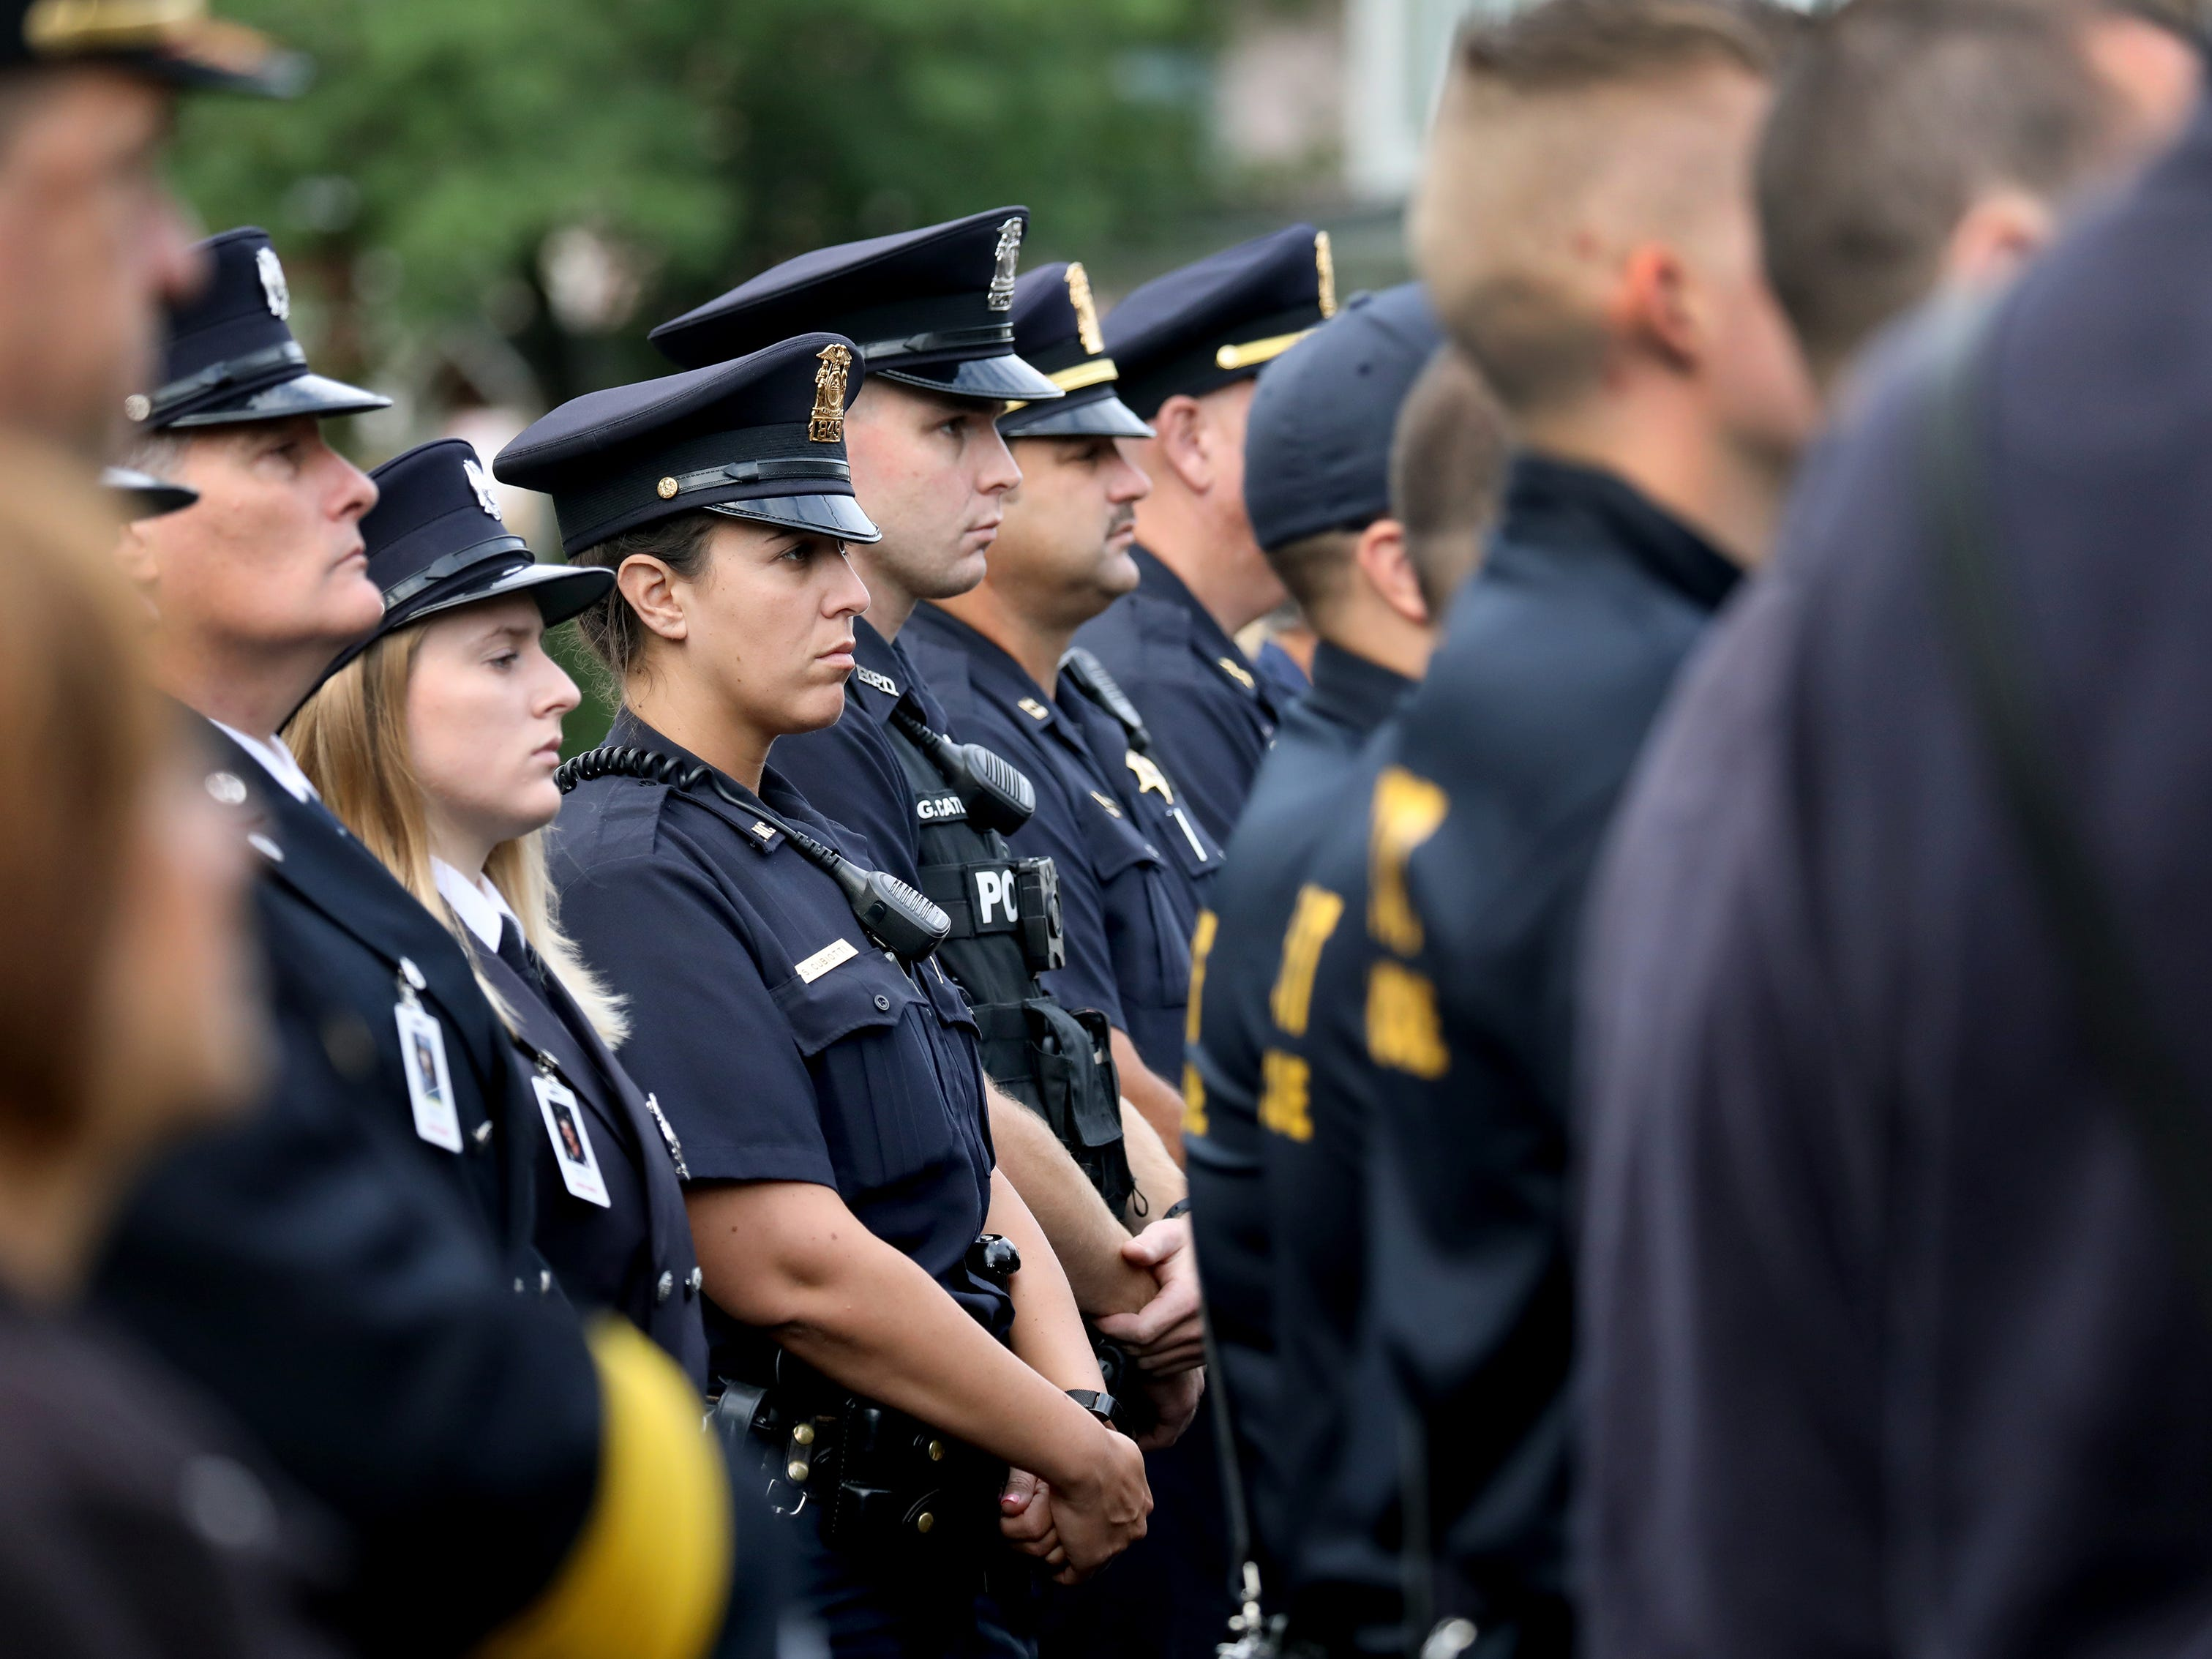 Members of law enforcement stand in formation as they join firefighters to pay their respects during the September 11th remembrance service at the Brockport Fire Department, Station 4.